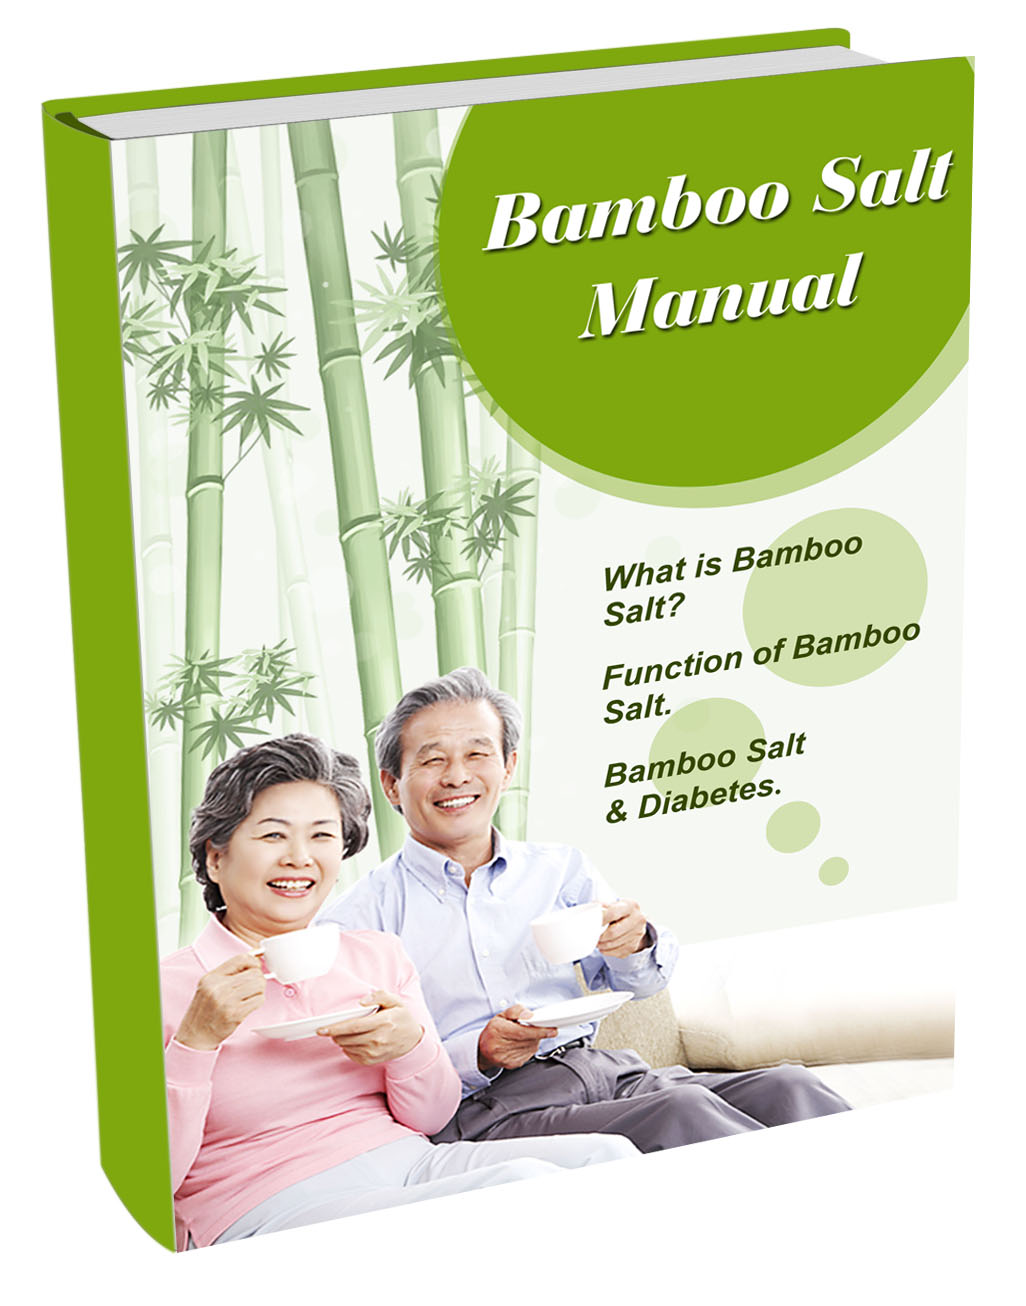 bamboo salt manual cover